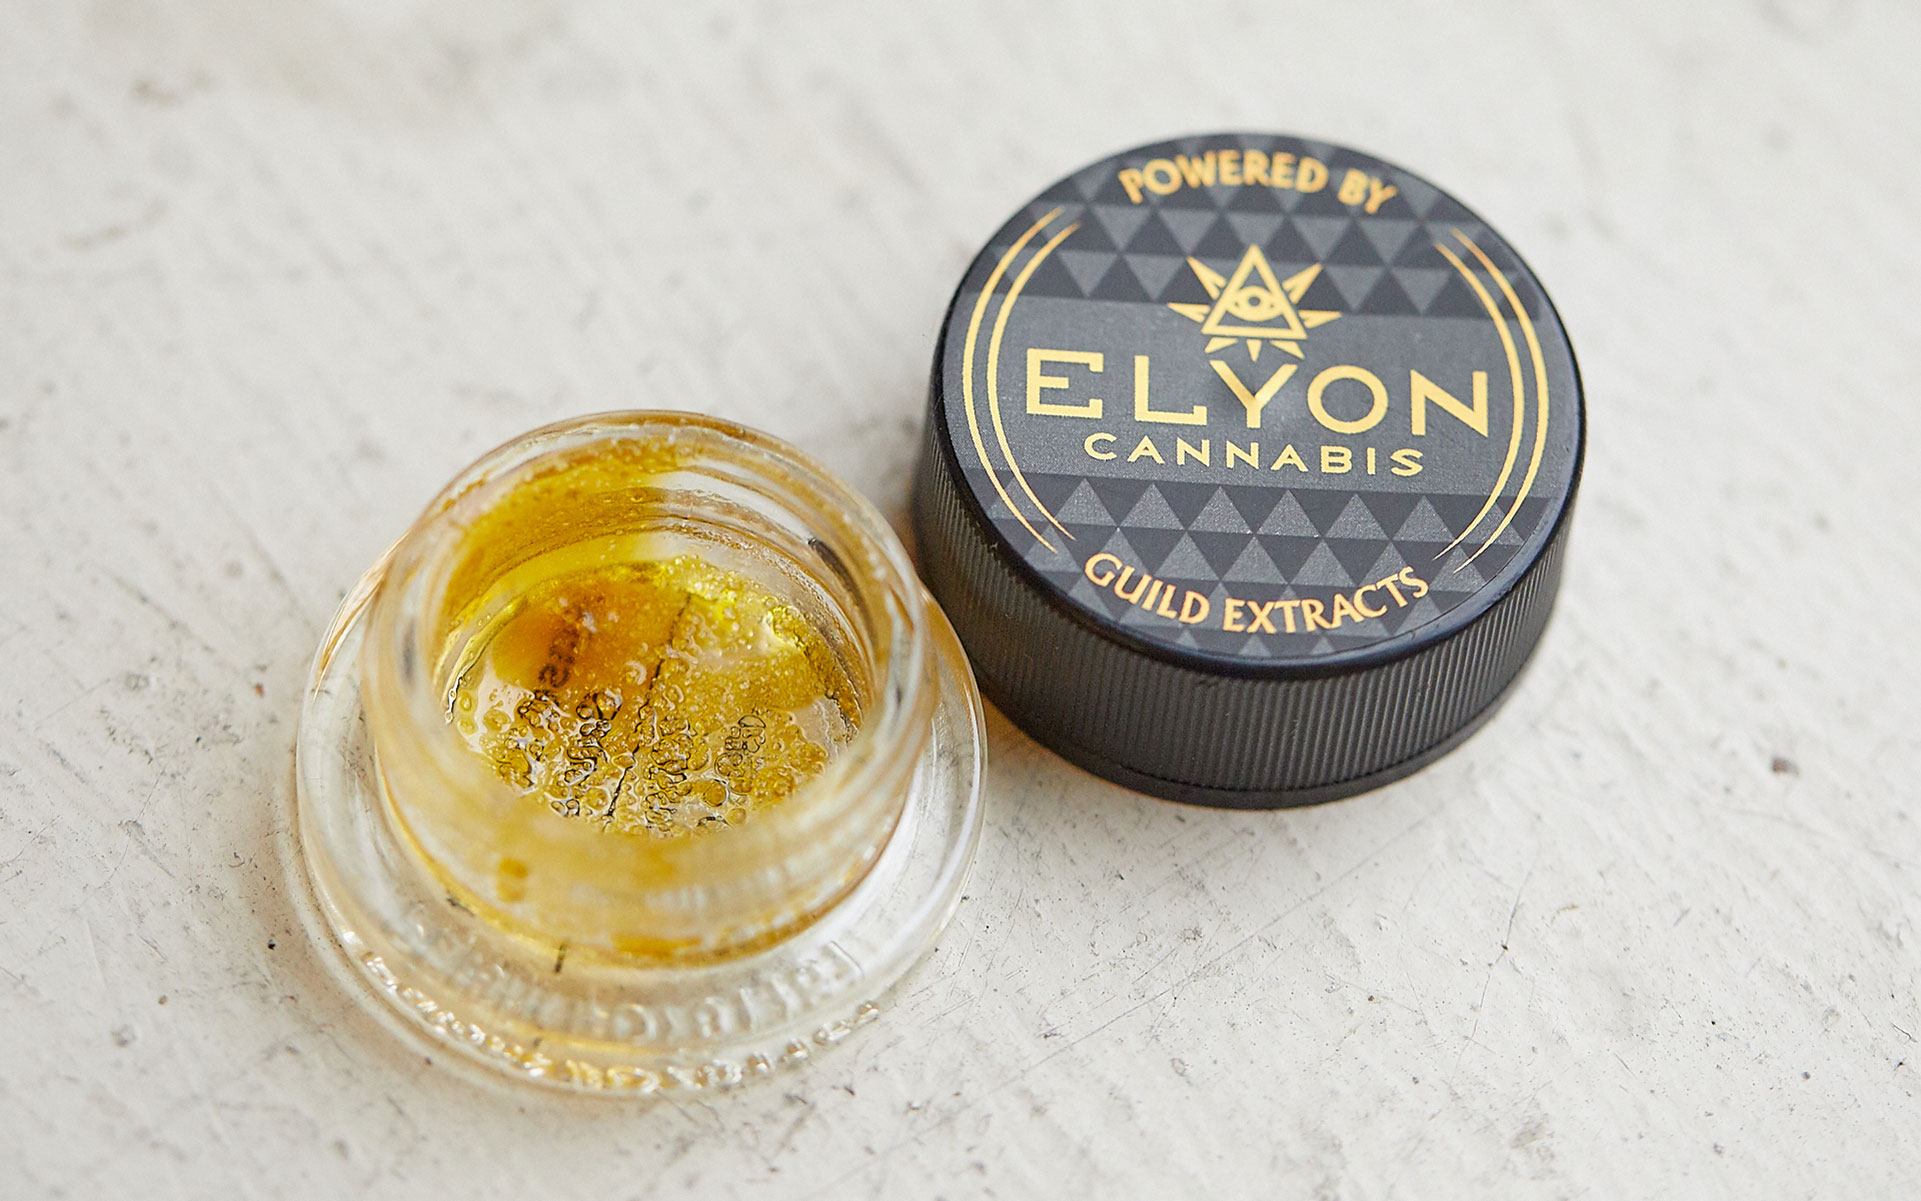 Elyon Guild extracts sauce live resin hash cannabis concentrate